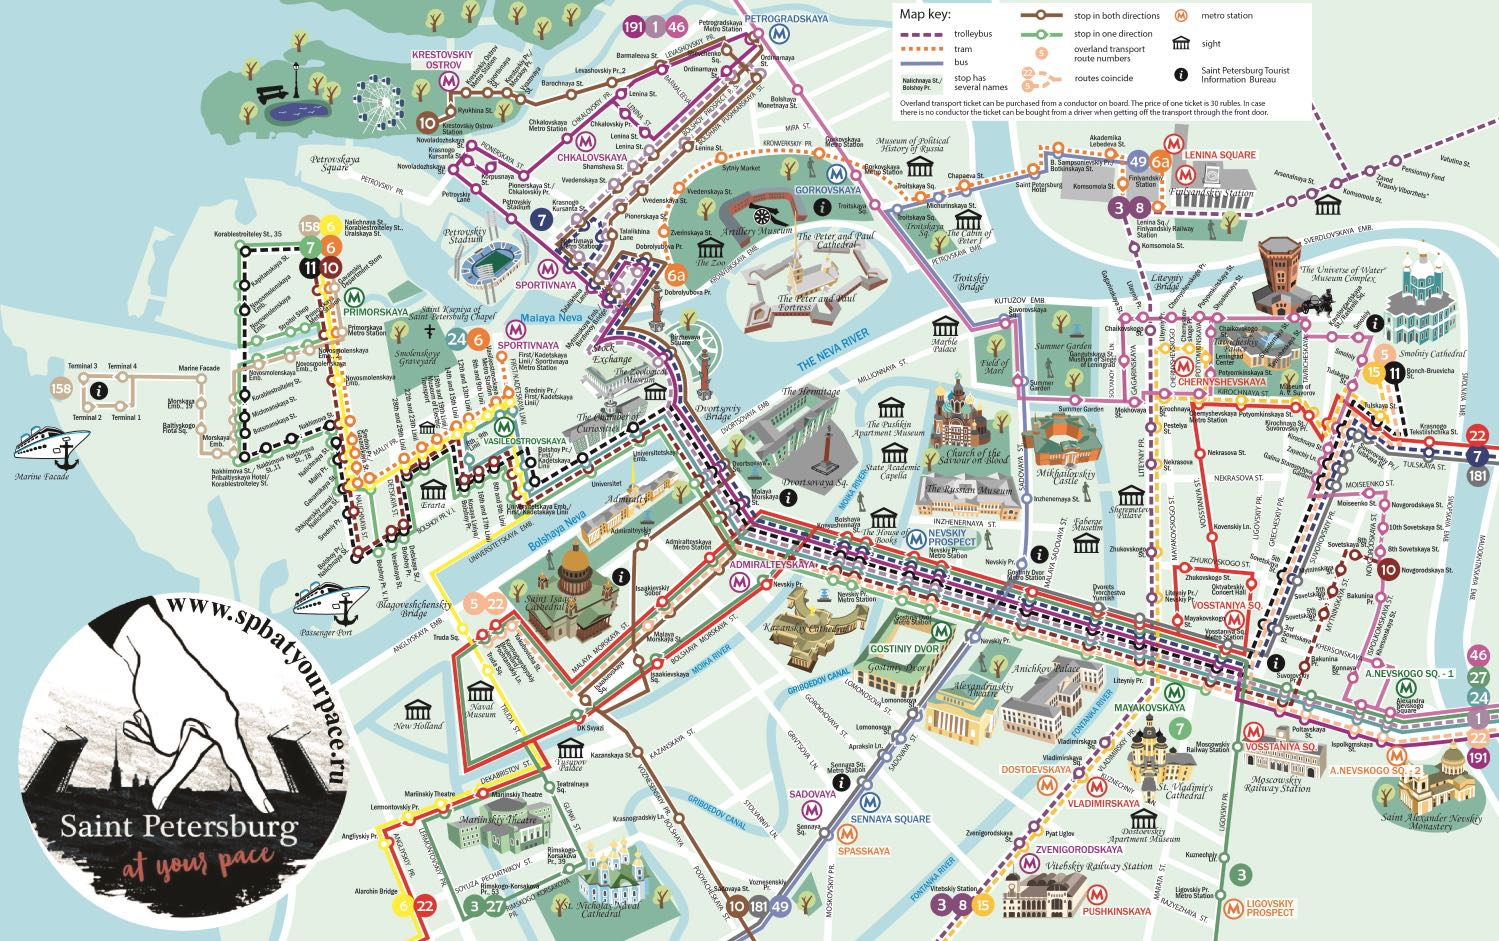 St Petersburg tourist map - City center - High resolution